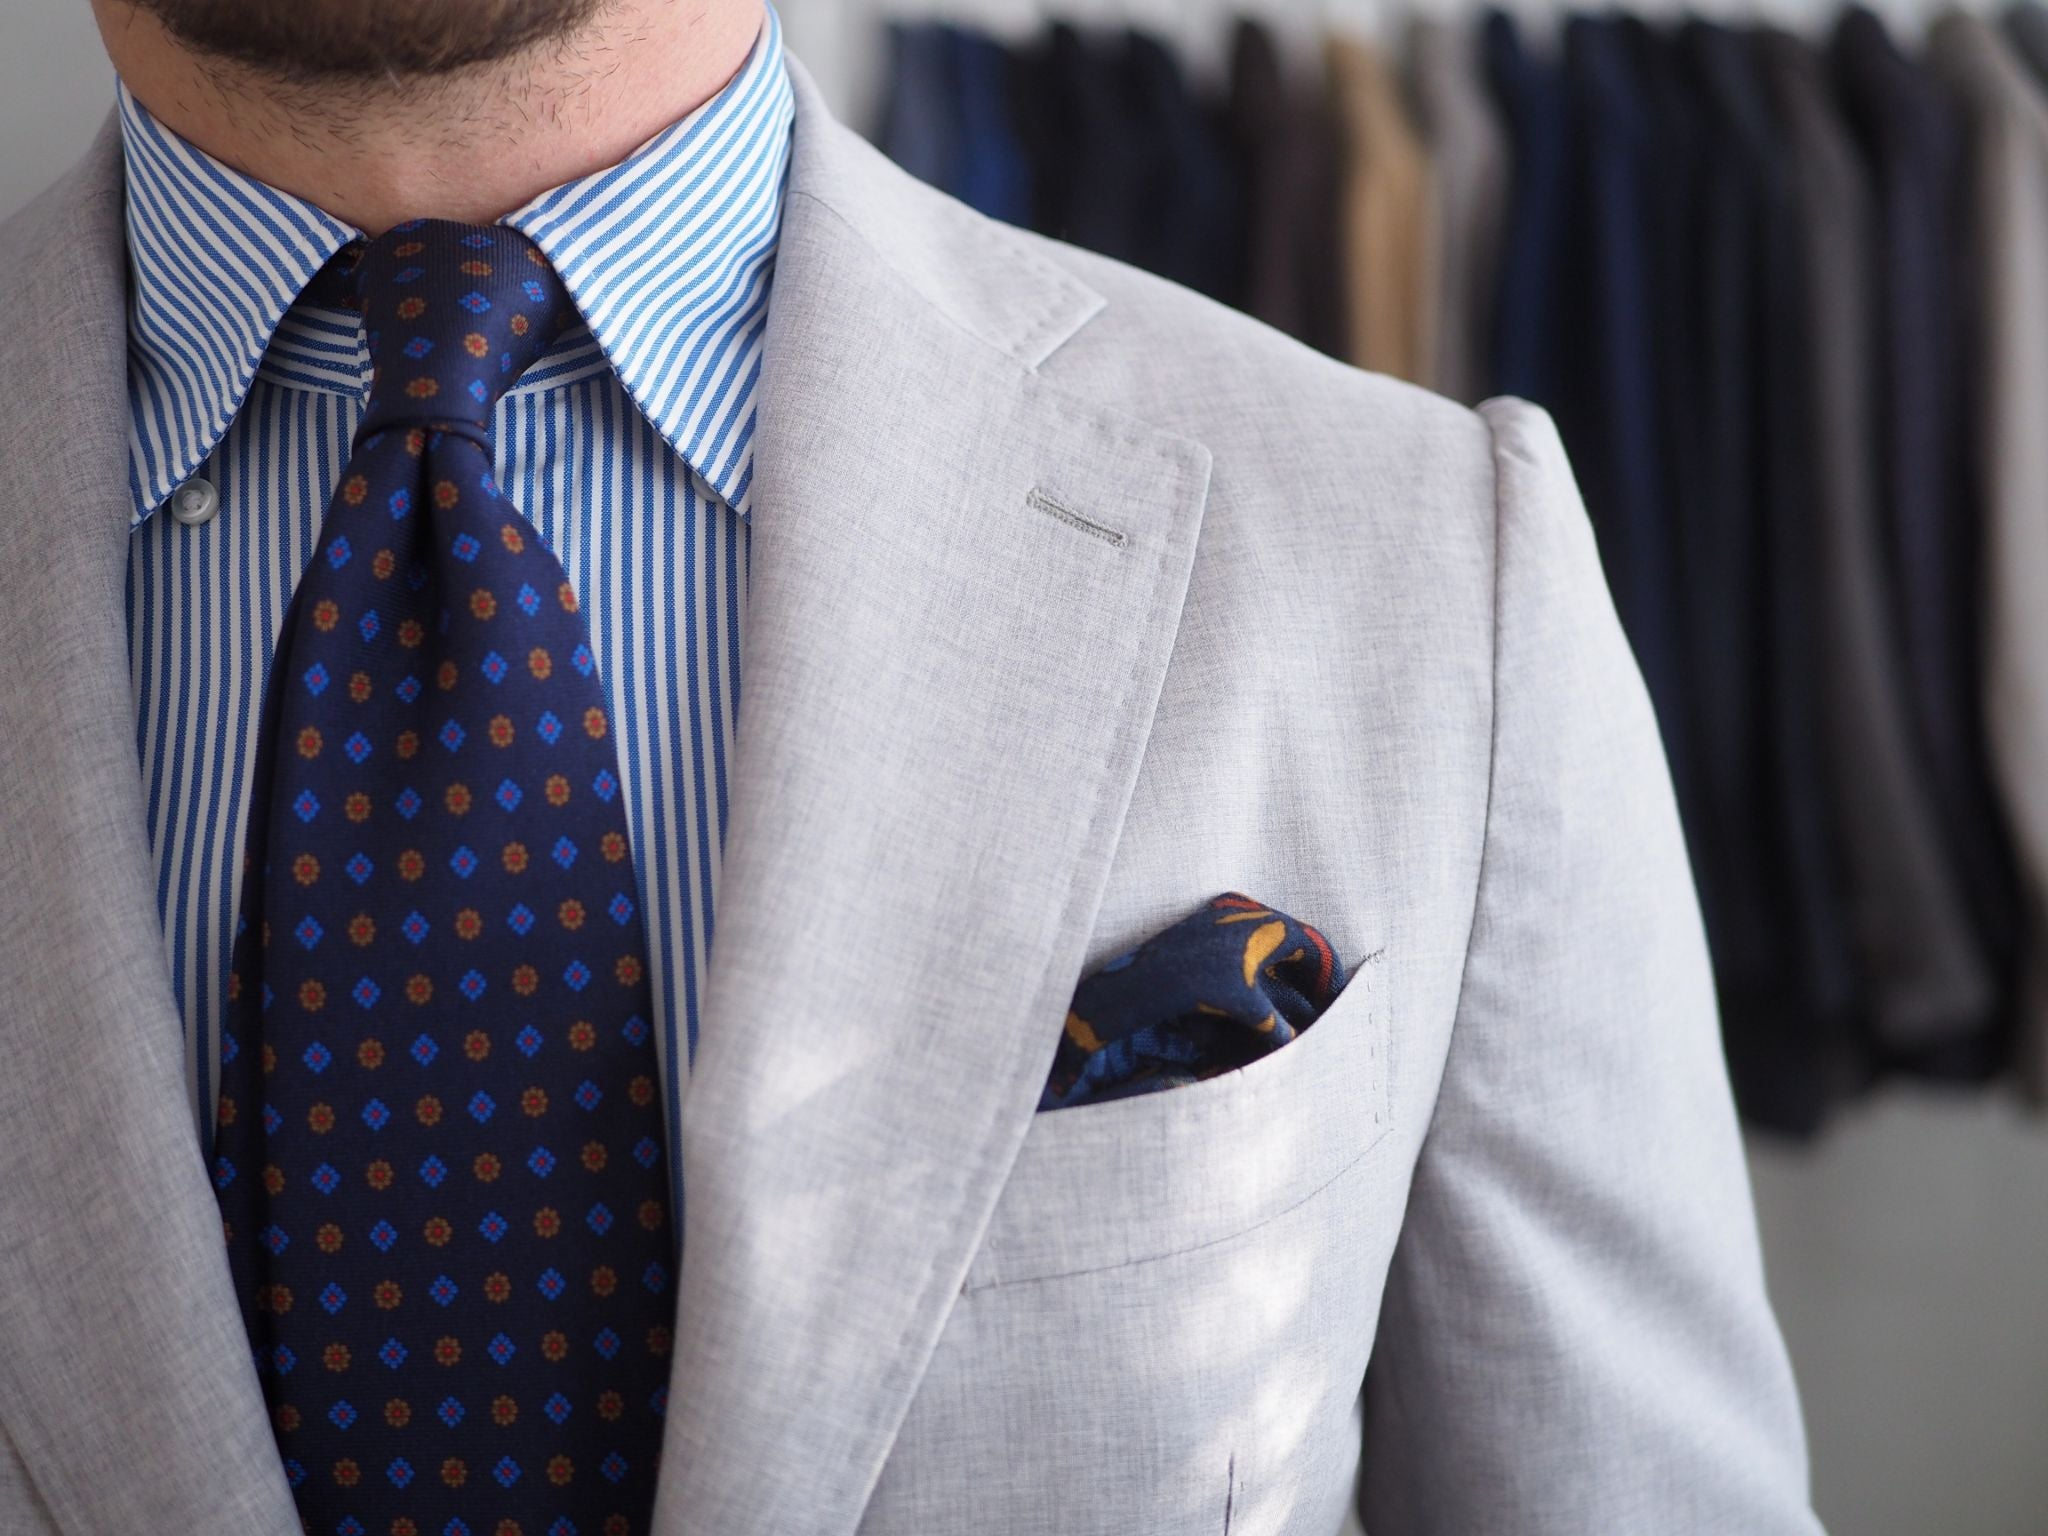 Printed silk tie with striped shirt and gray suit - close-up